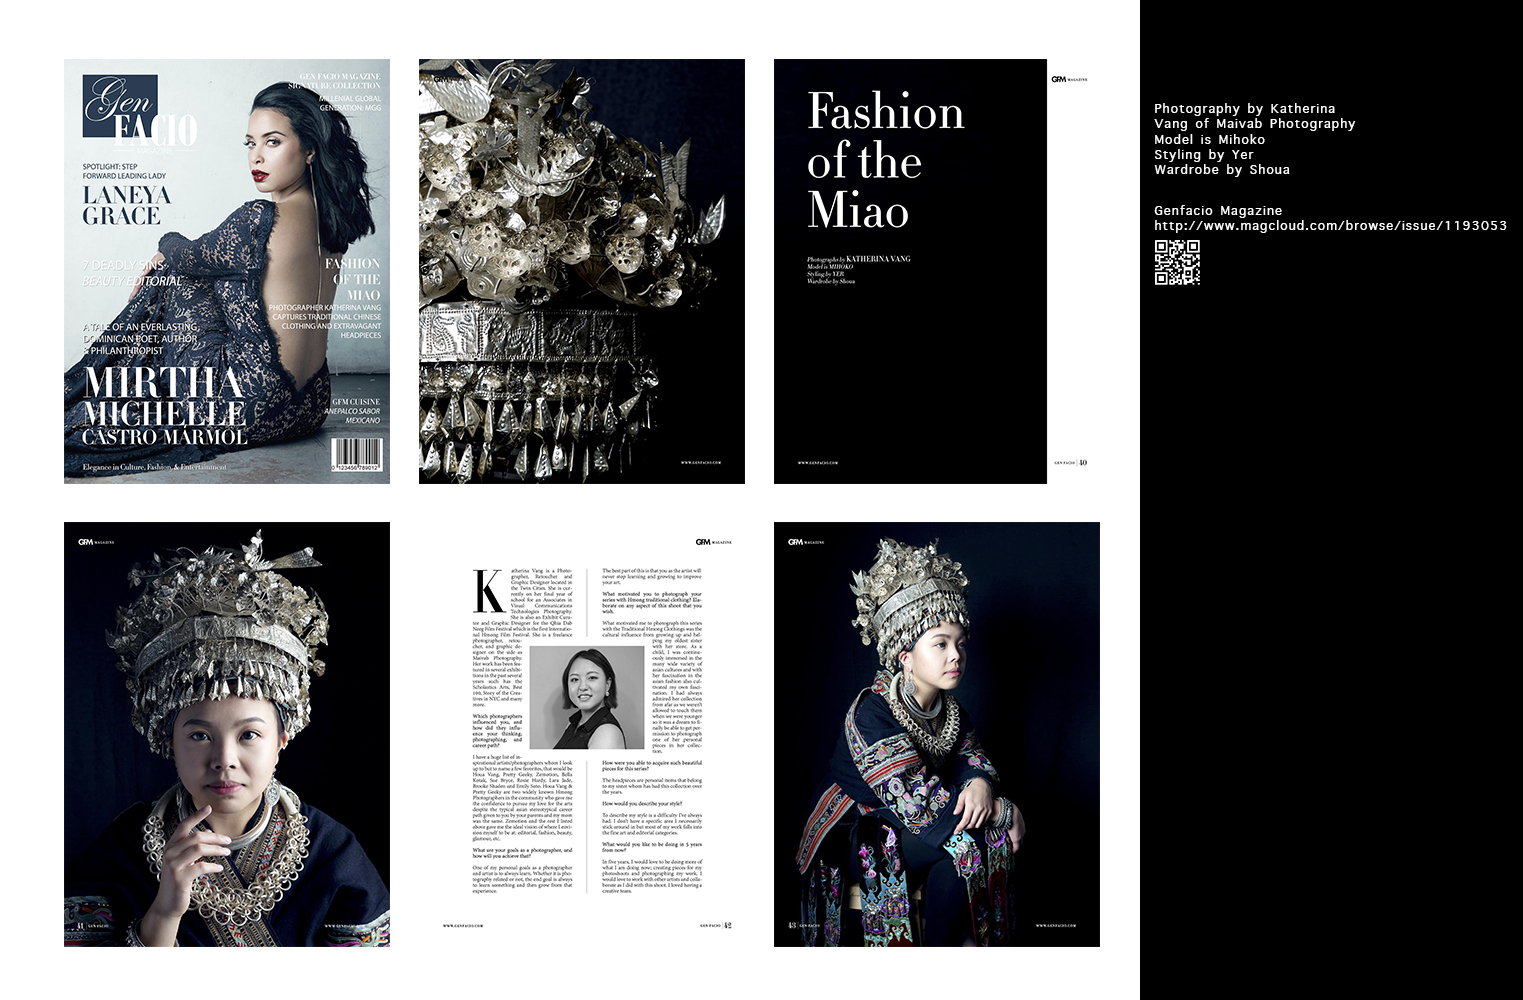 GenFacio Magazine | 2016  http://www.magcloud.com/browse/issue/1193053